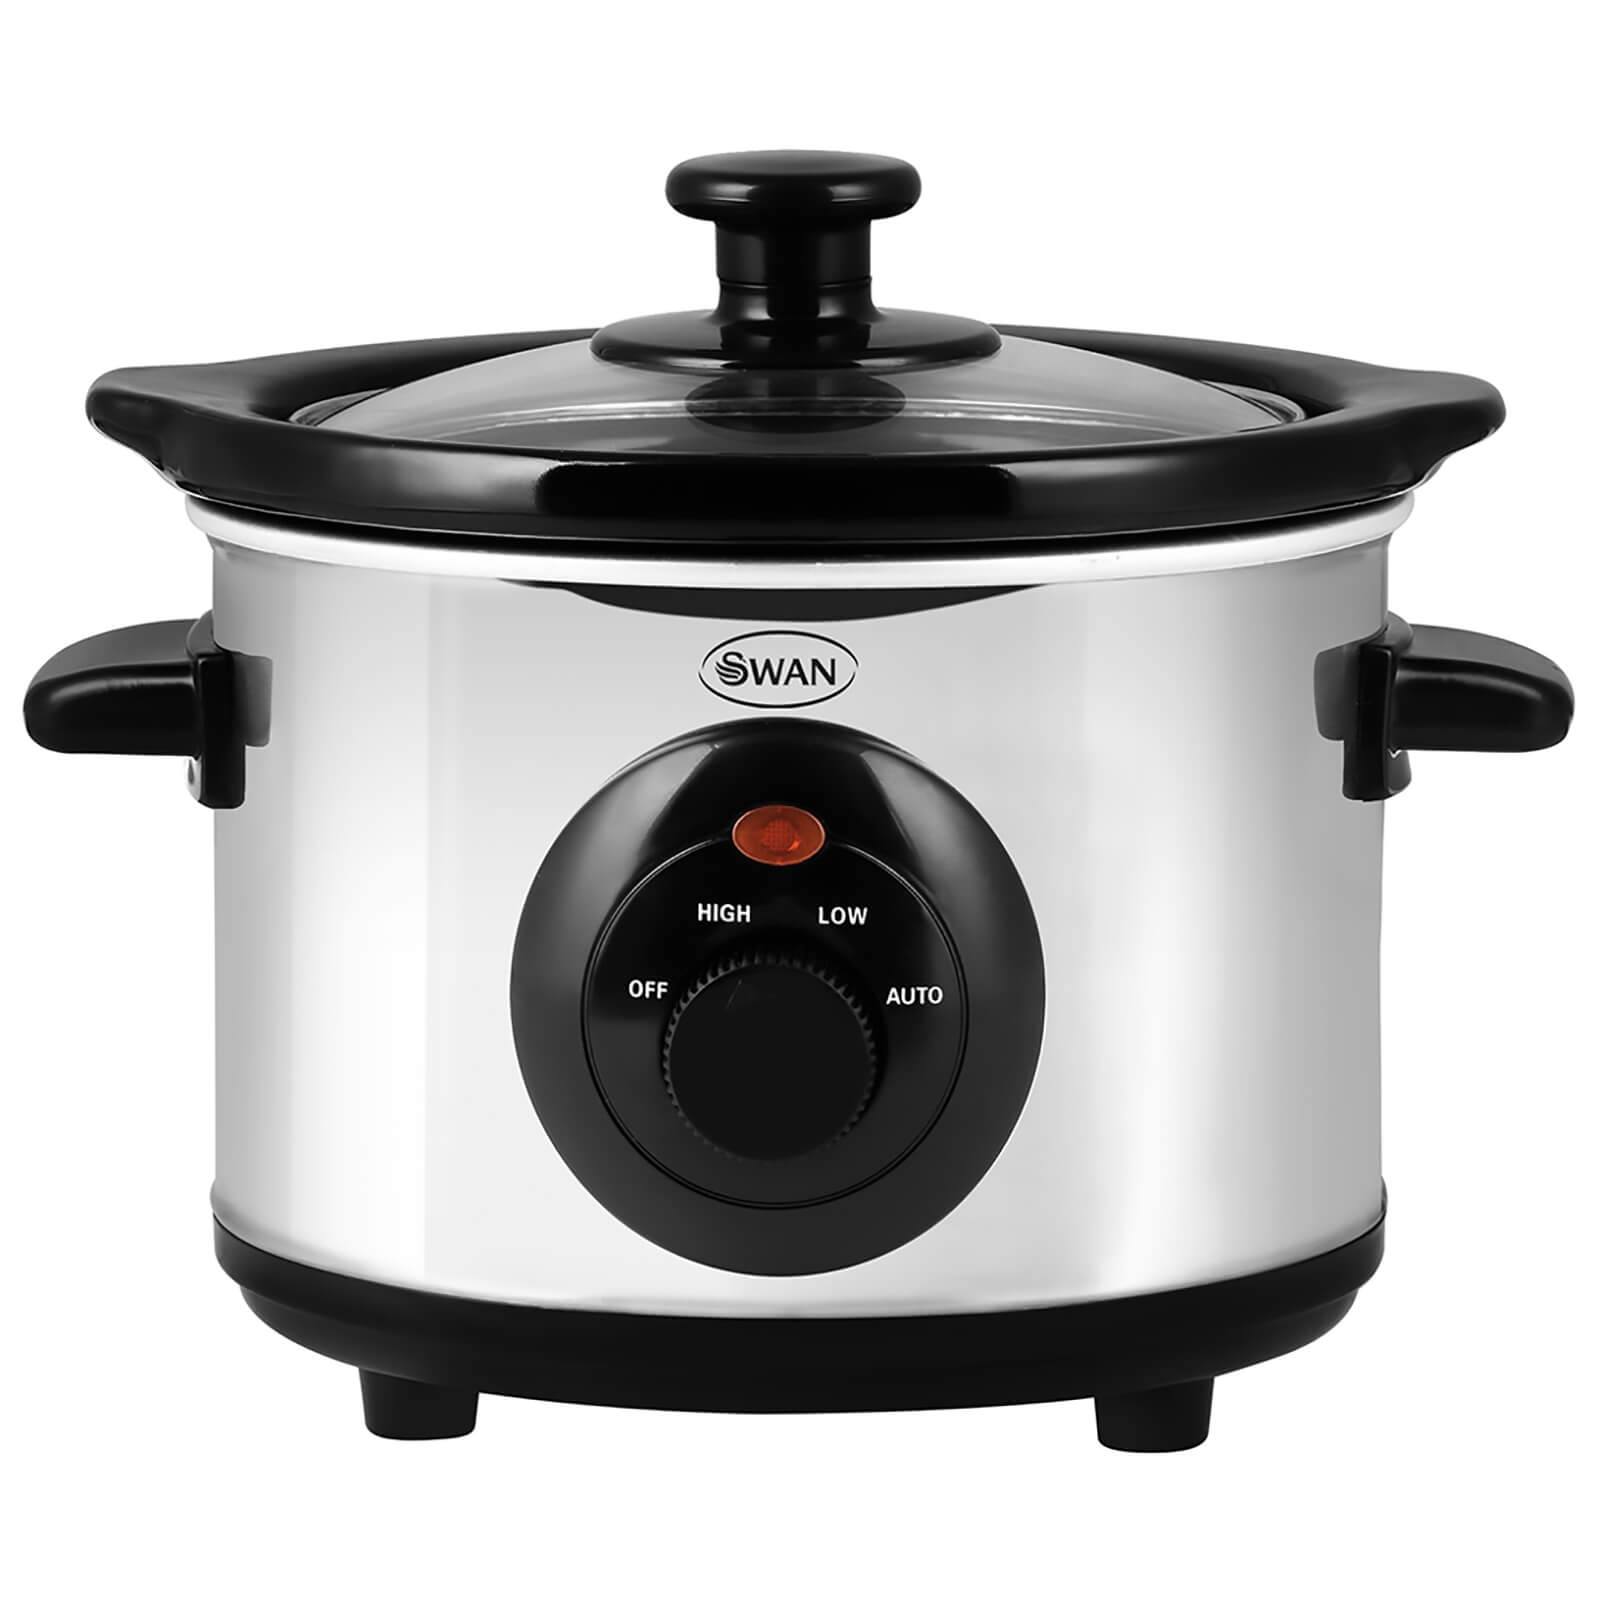 Swan SF17010N Slow Cooker - Stainless Steel - 1.5L